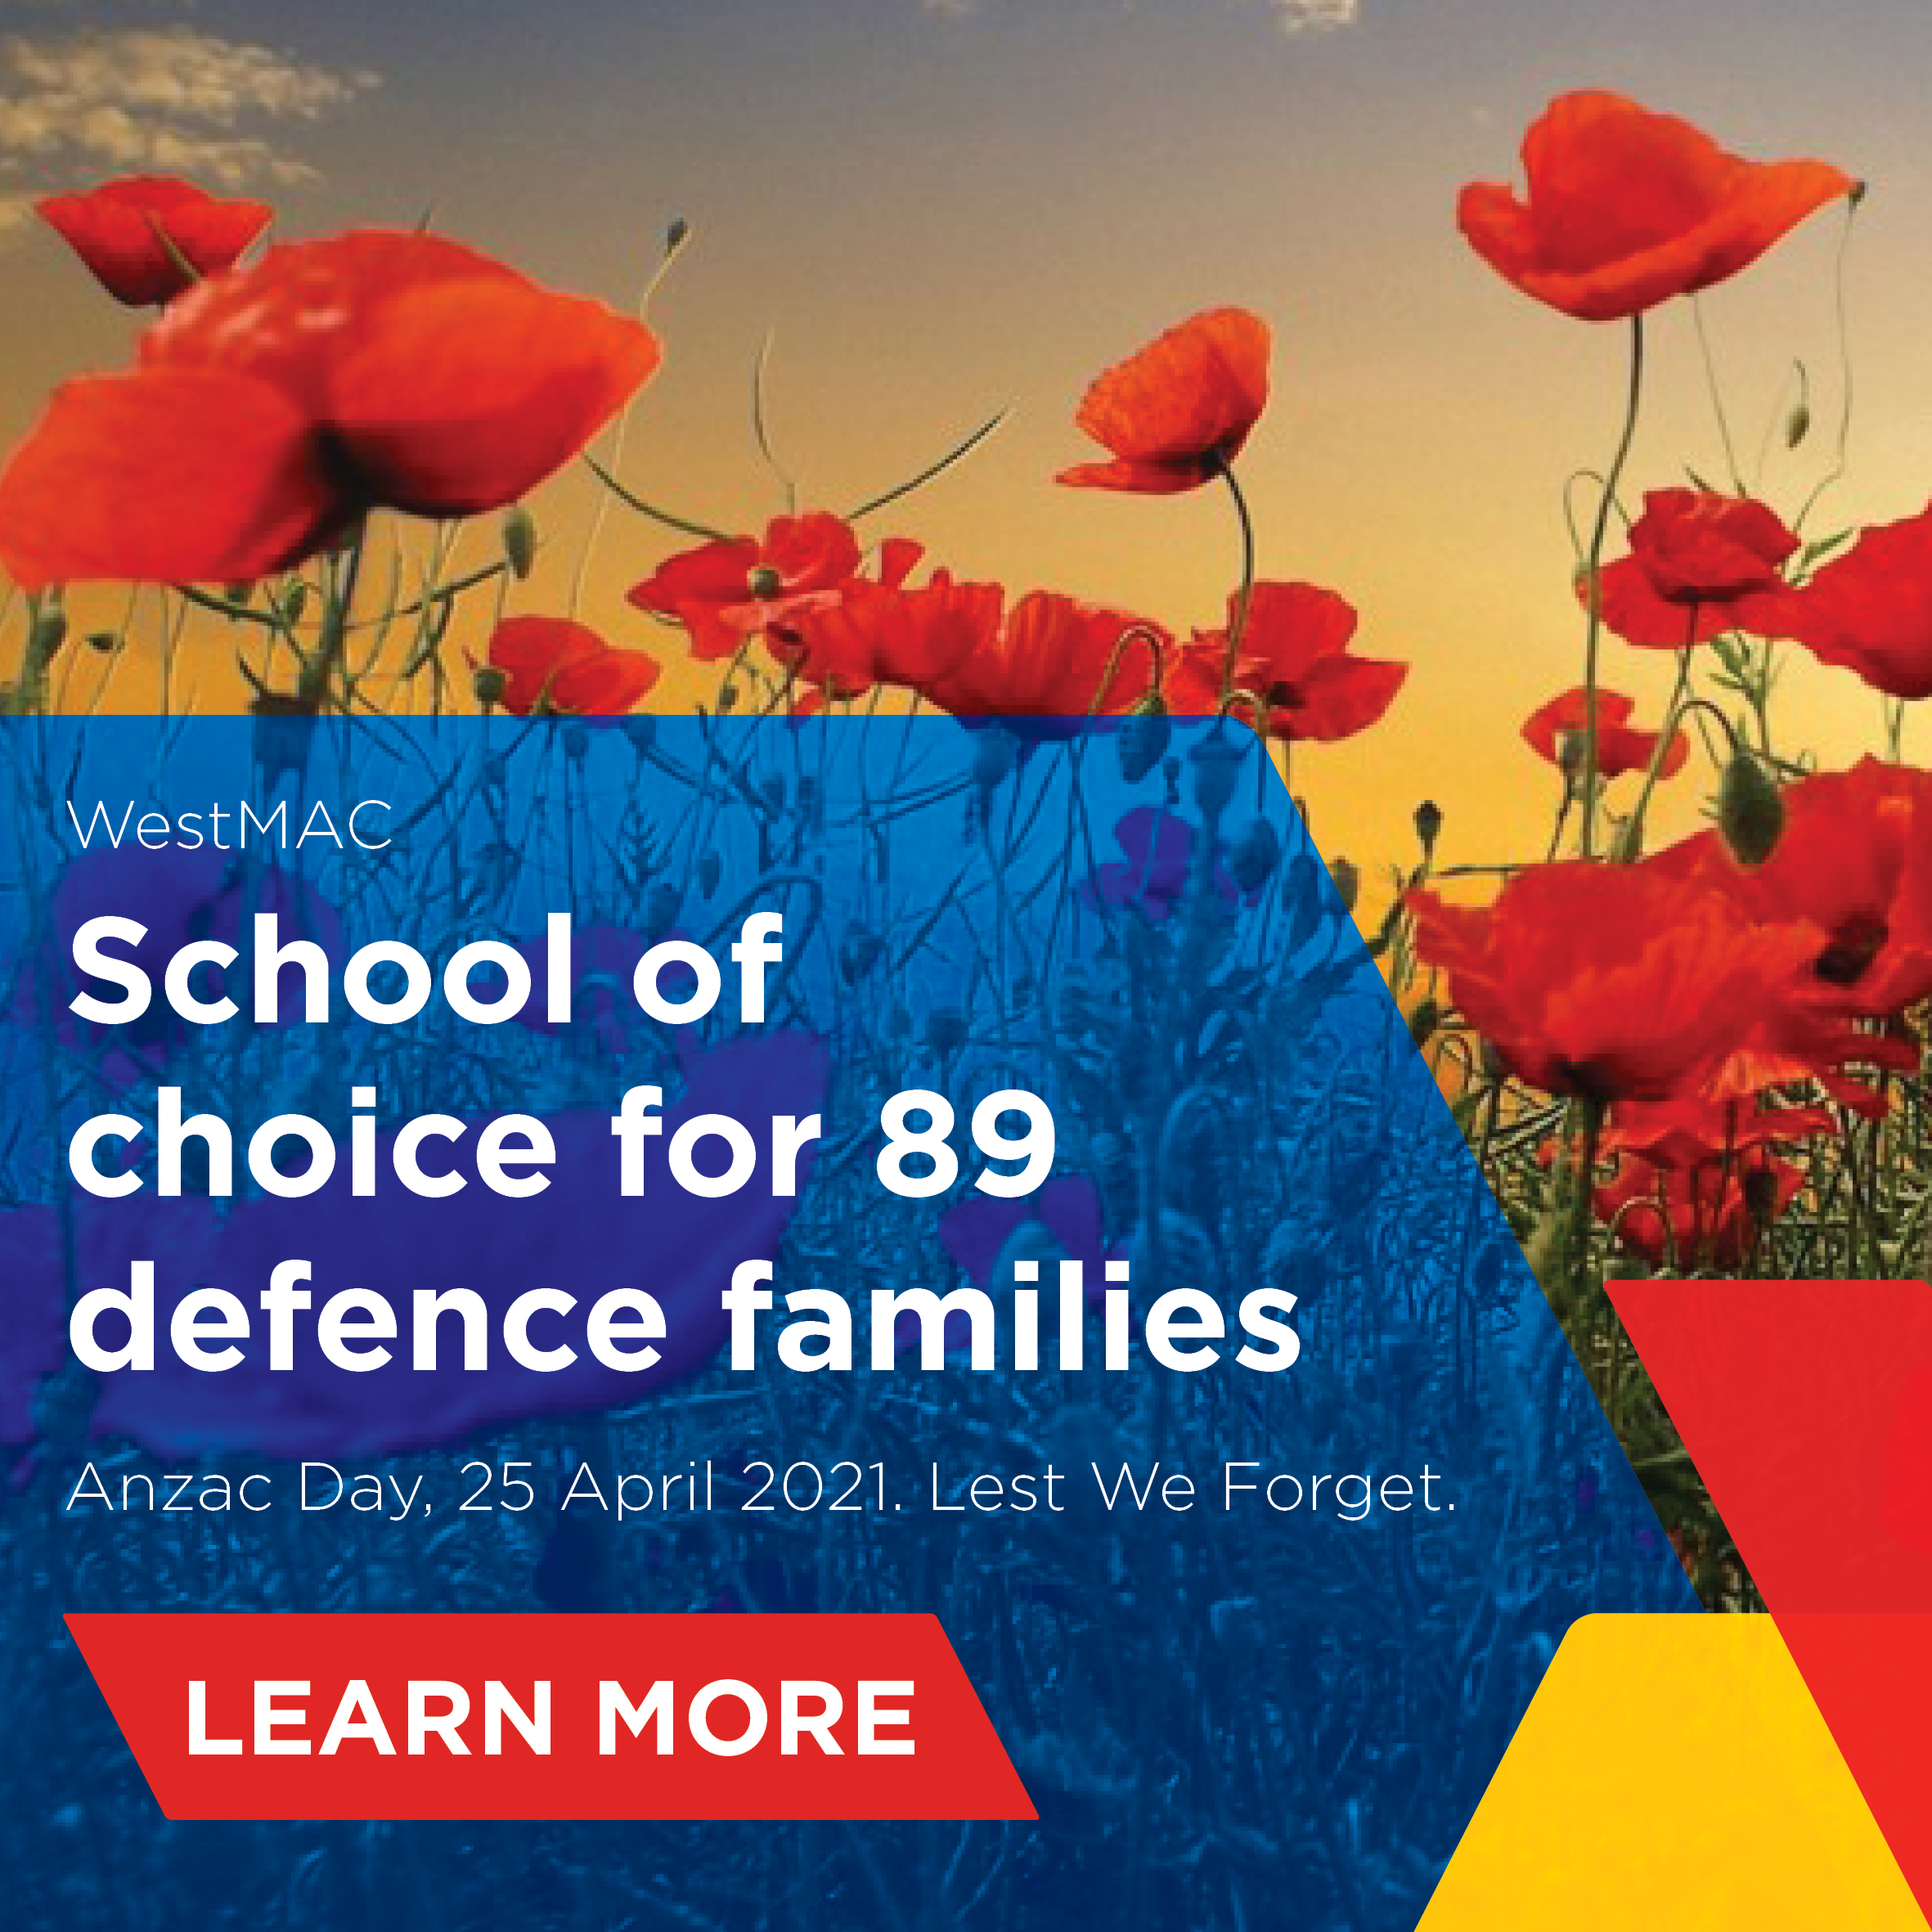 https://www.wmac.com.au/wellbeing/defence-transitions